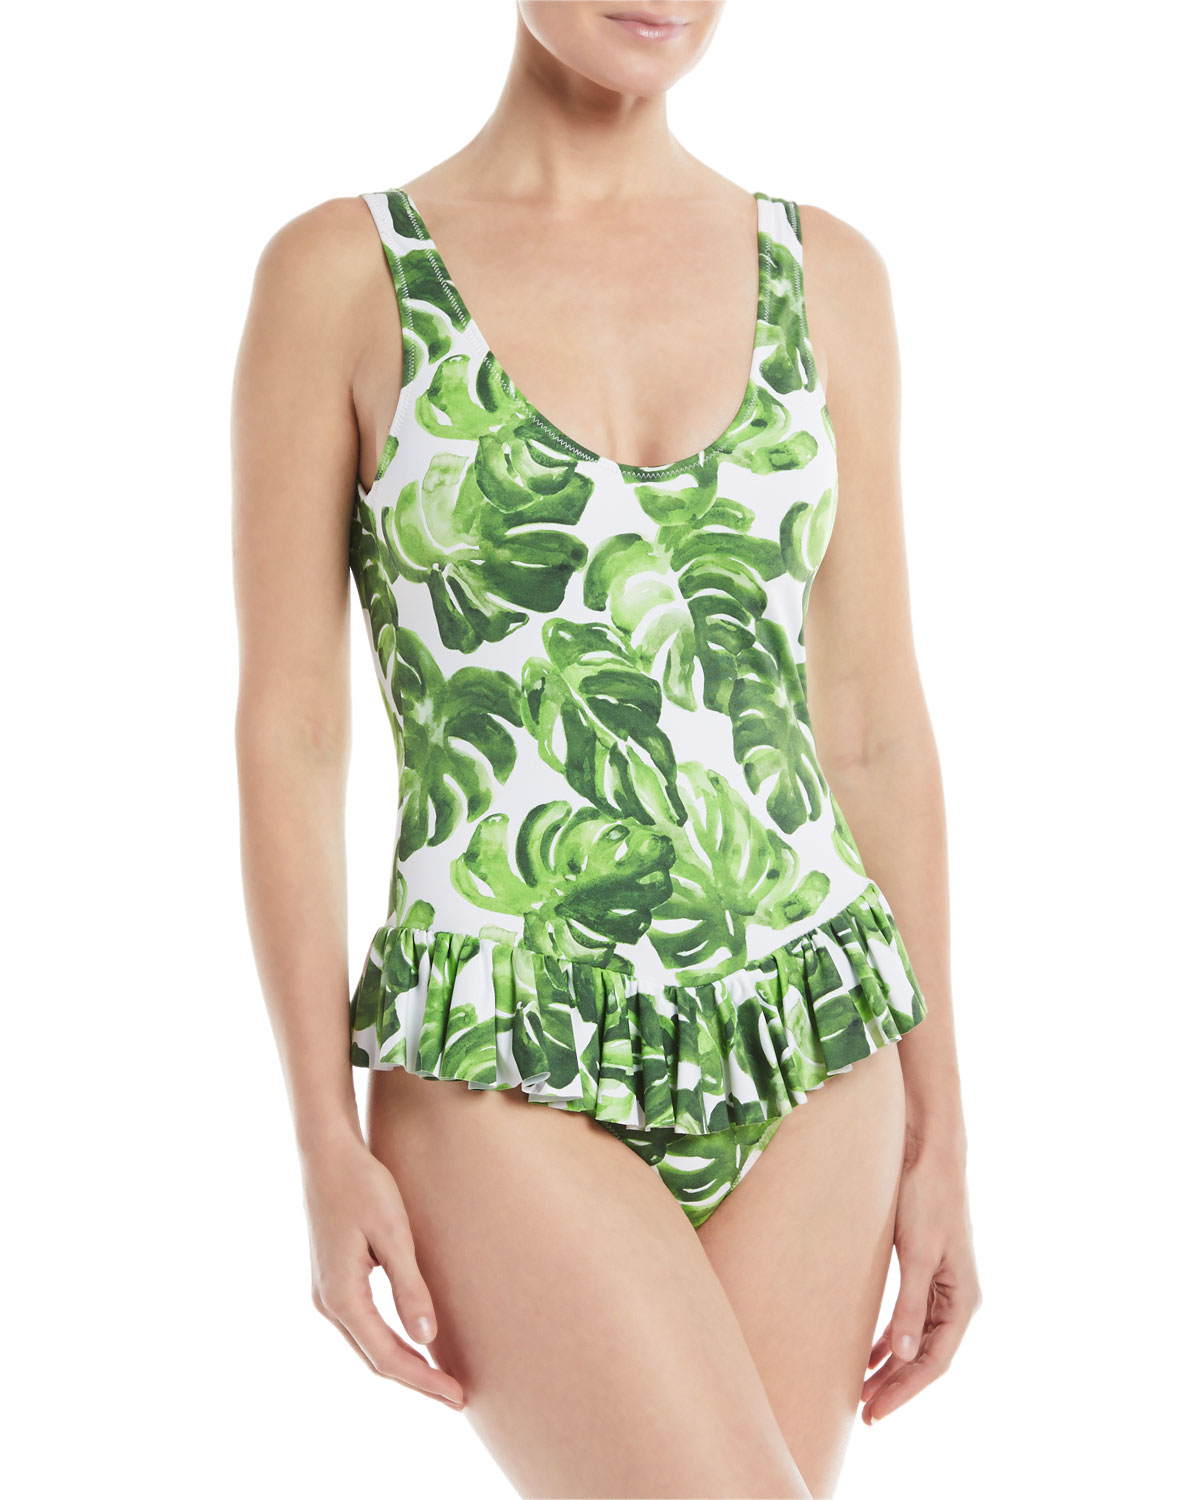 Tinos Palm-Print One-Piece Swimsuit with Ruffled Skirt